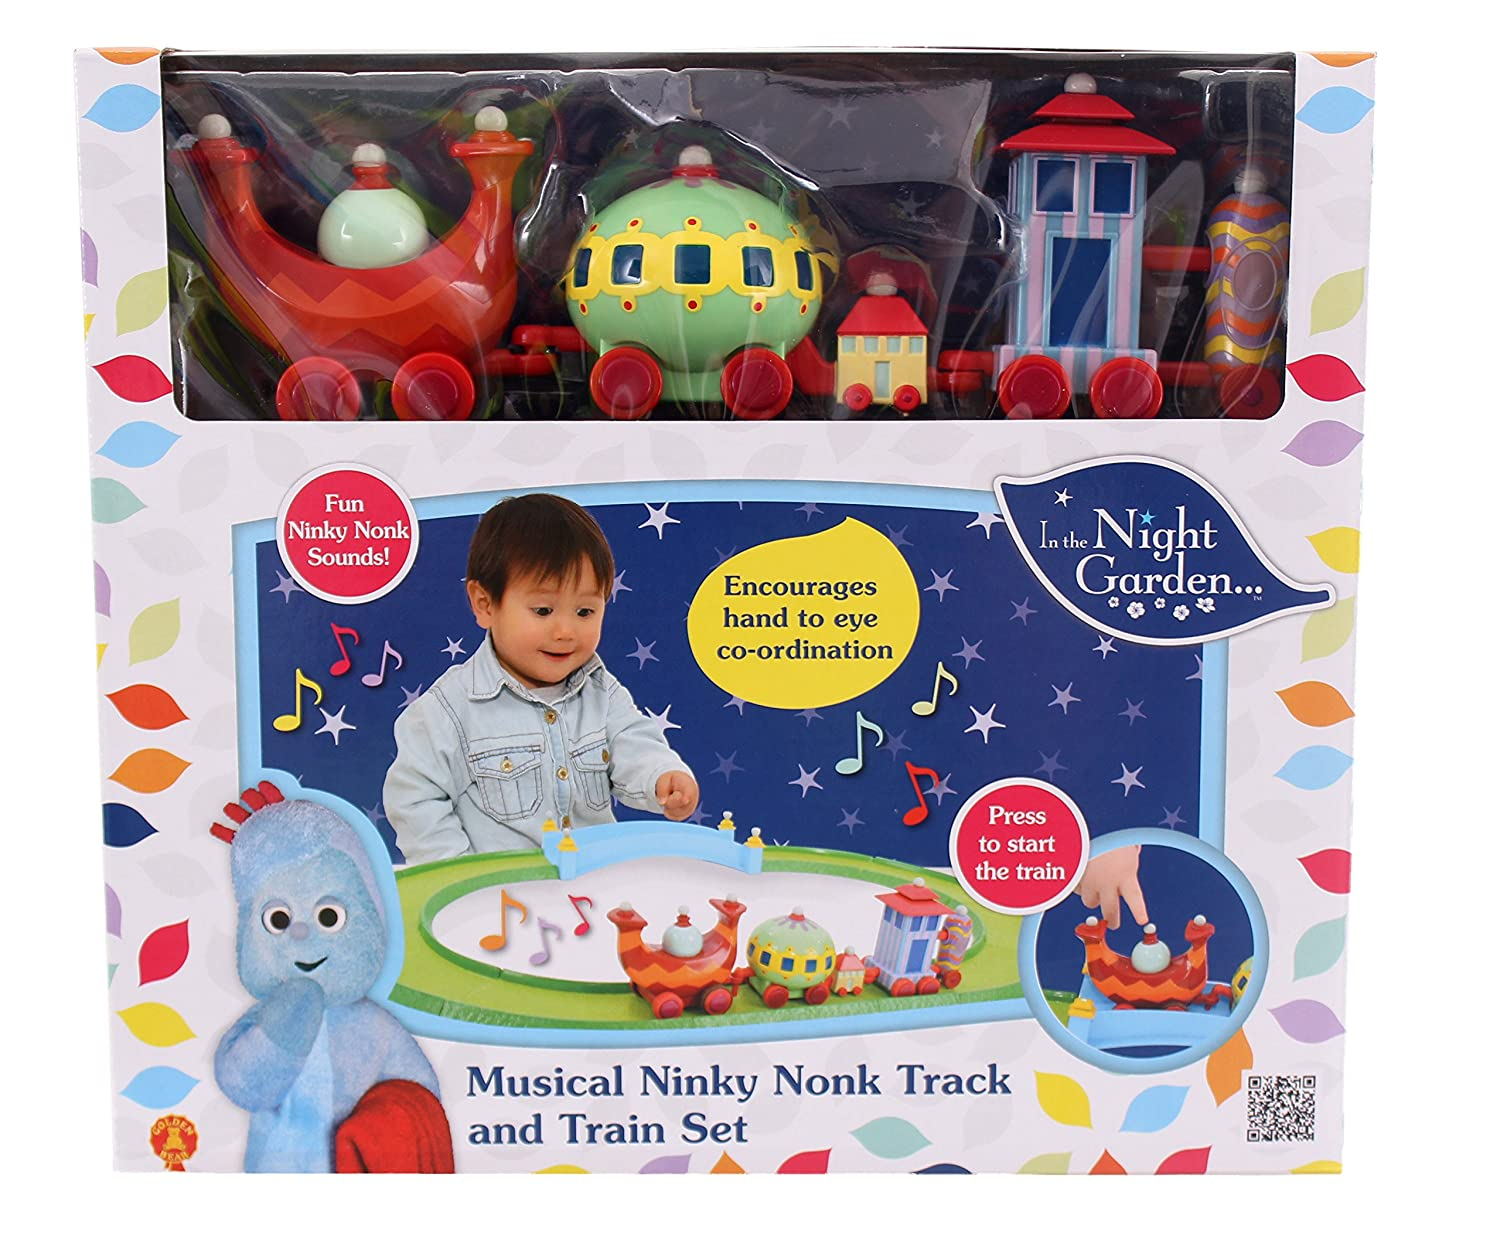 Amazon.com In The Night Garden Musical Ninky Nonk Track u0026 Train Set Toys u0026 Games  sc 1 st  Amazon.com & Amazon.com: In The Night Garden Musical Ninky Nonk Track u0026 Train Set ...